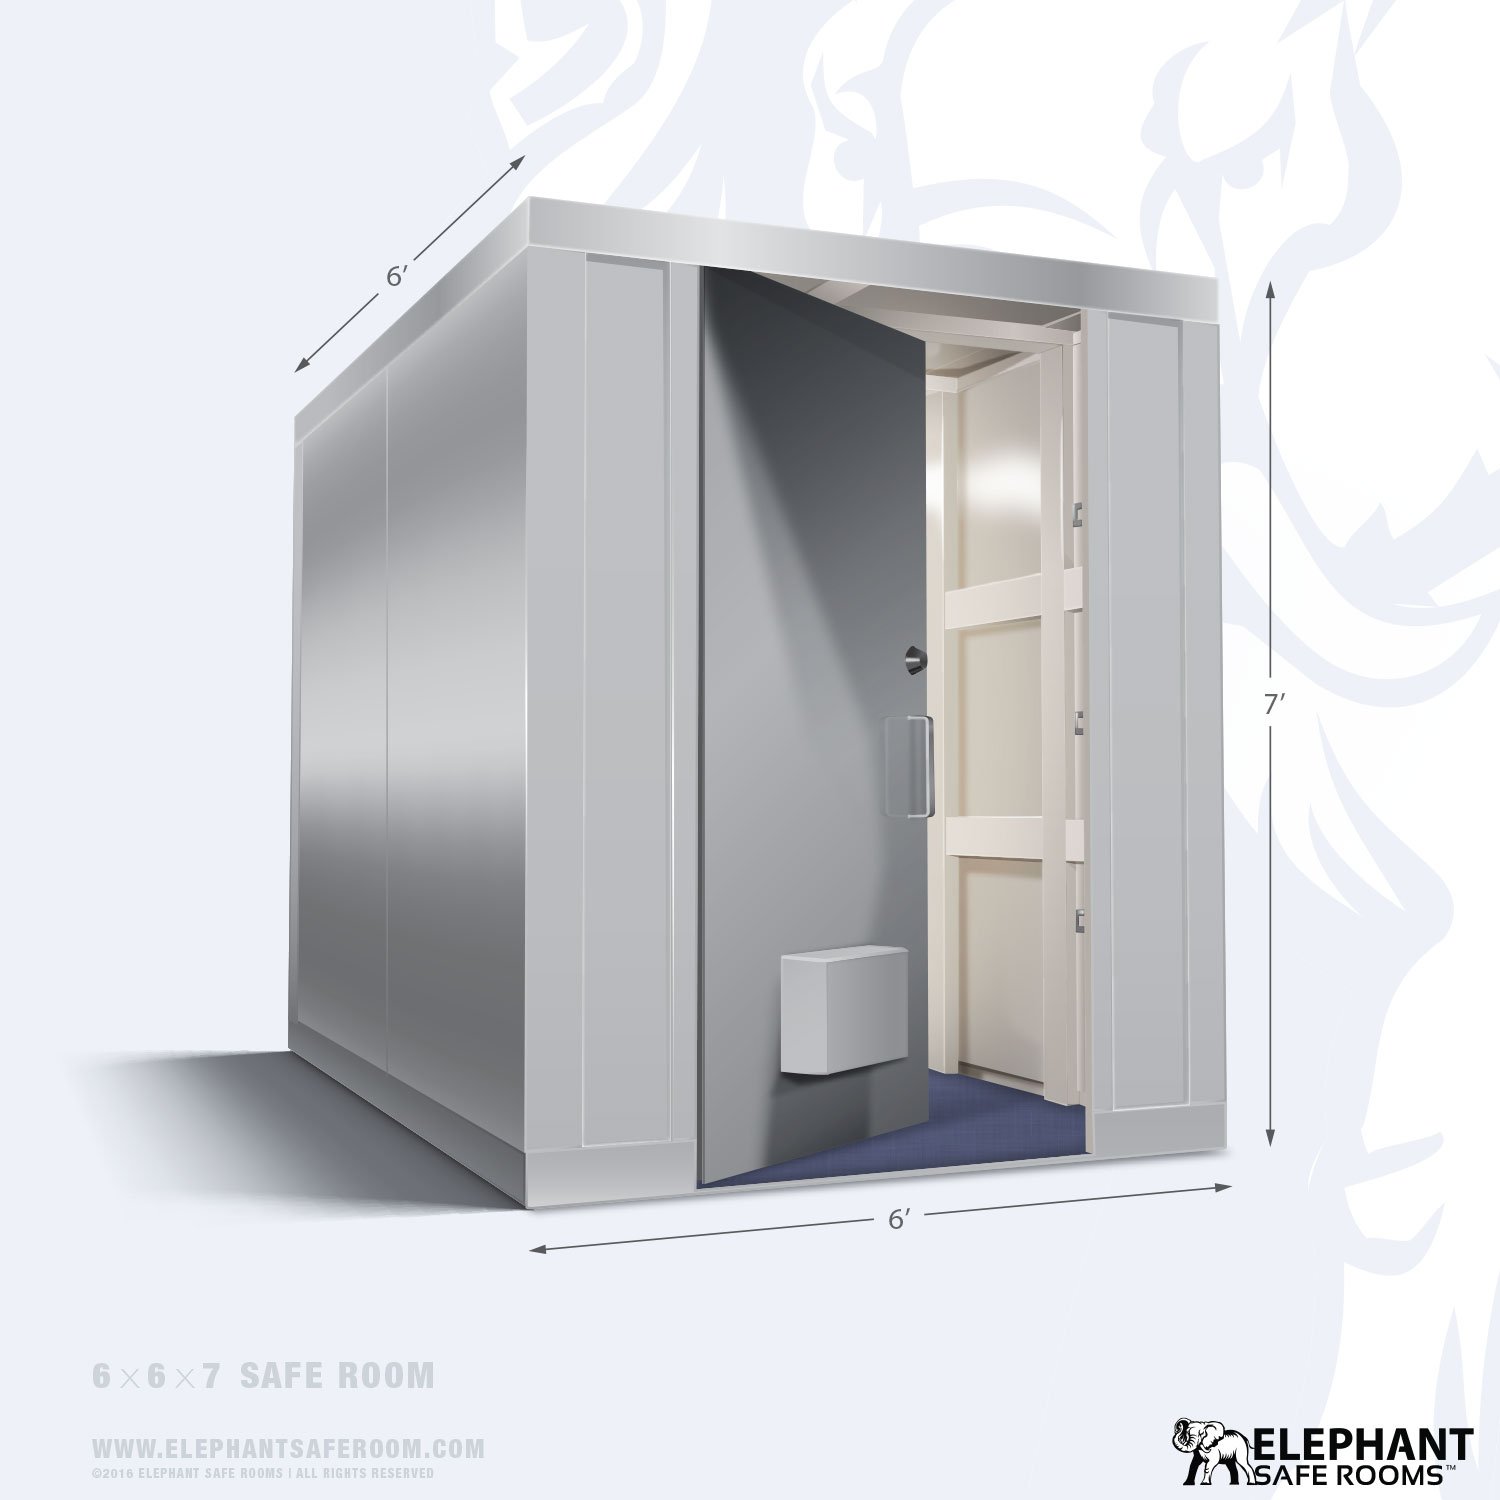 Elephant safe room with dimensions 6 x 6